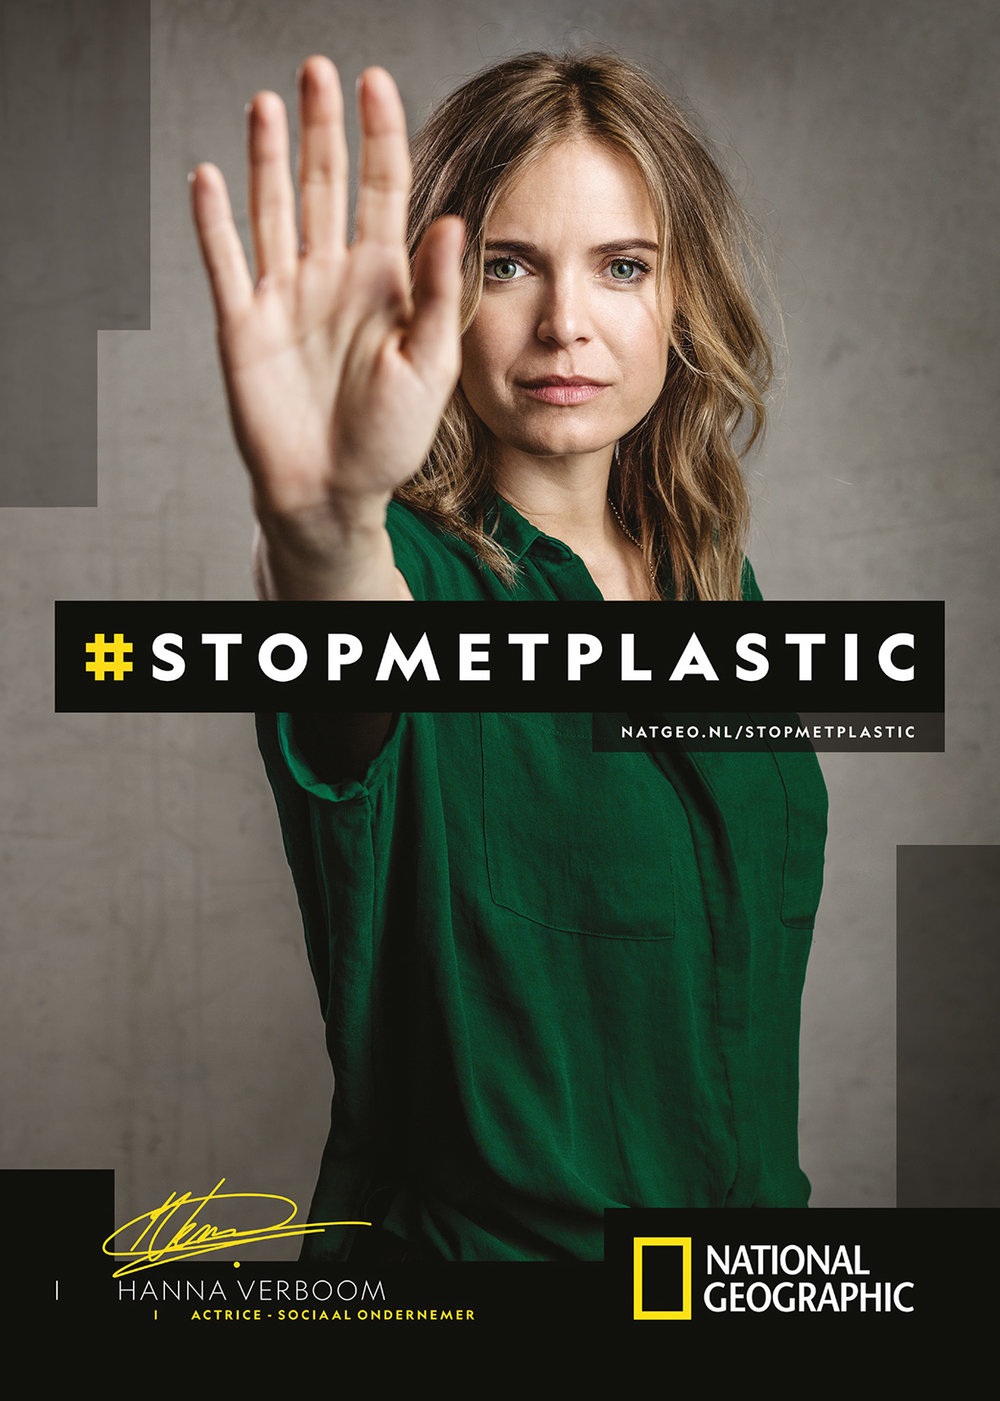 National Geographic: Campagne #STOPMETPLASTIC